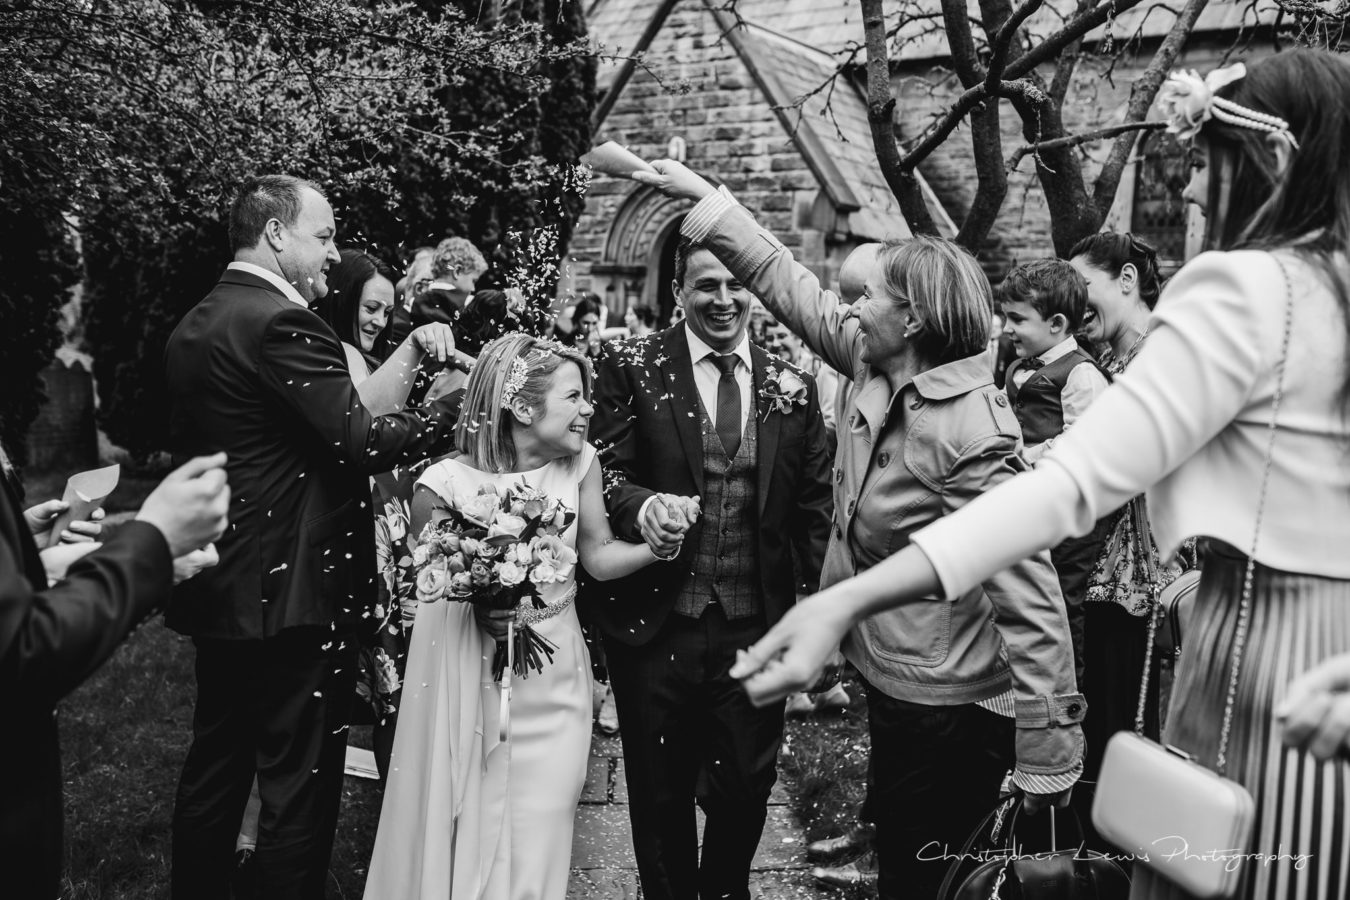 Thief-Hall-Wedding-Christopher-Lewis-Photography-37